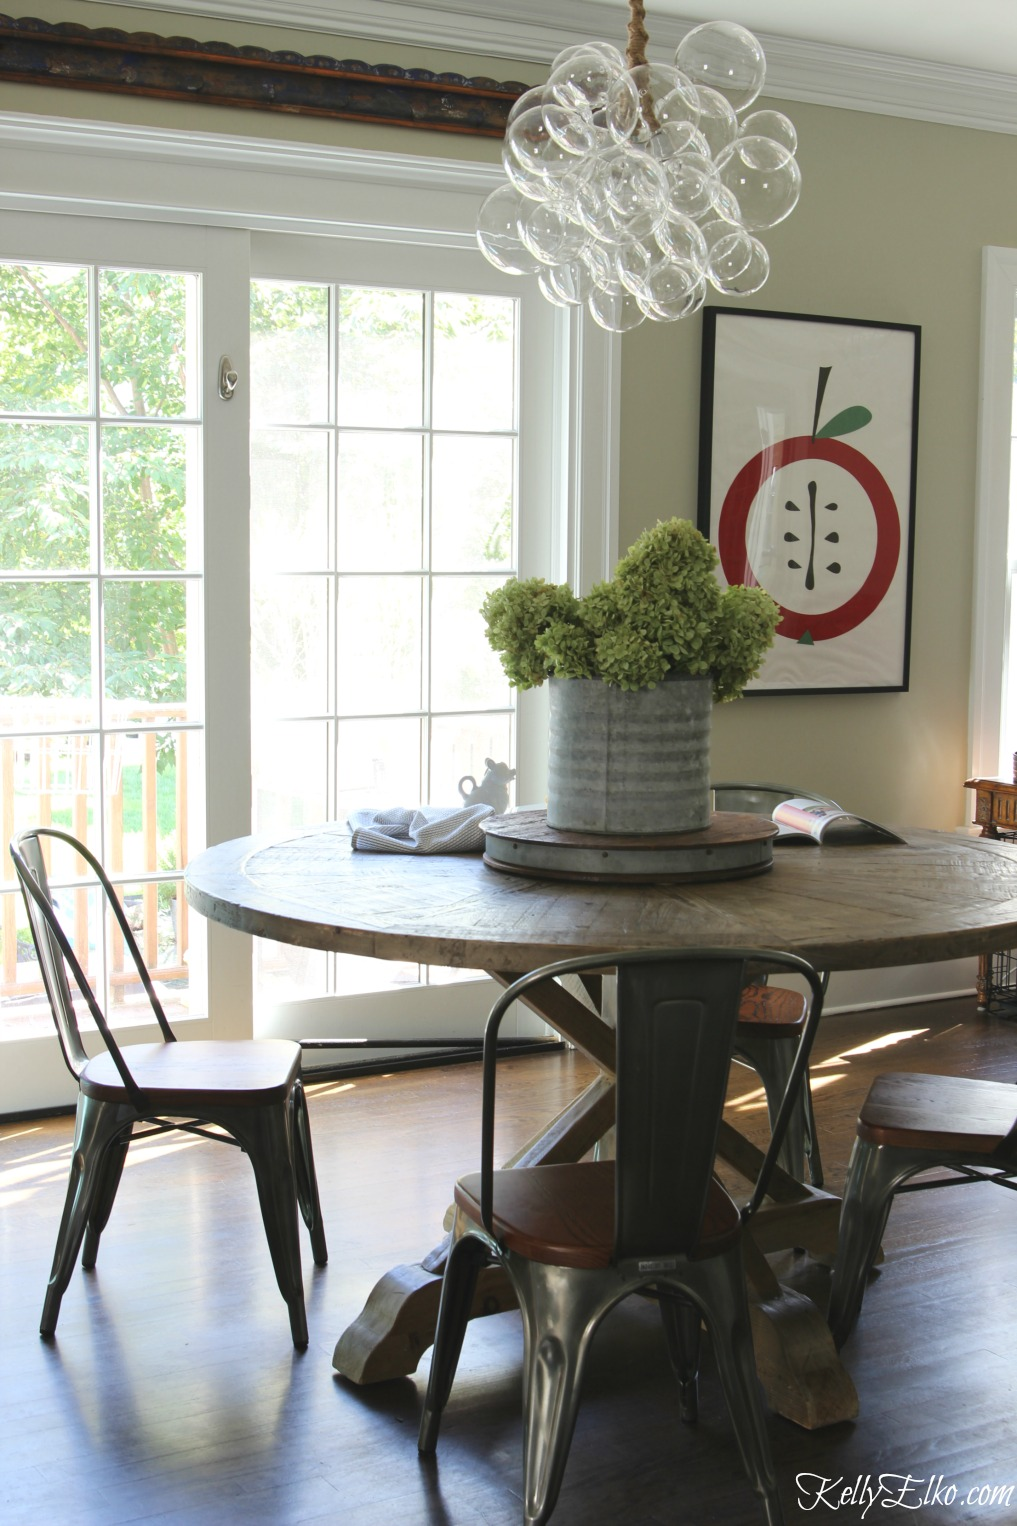 Wow - love the modern bubble chandelier paired with farmhouse kitchen table kellyelko.com